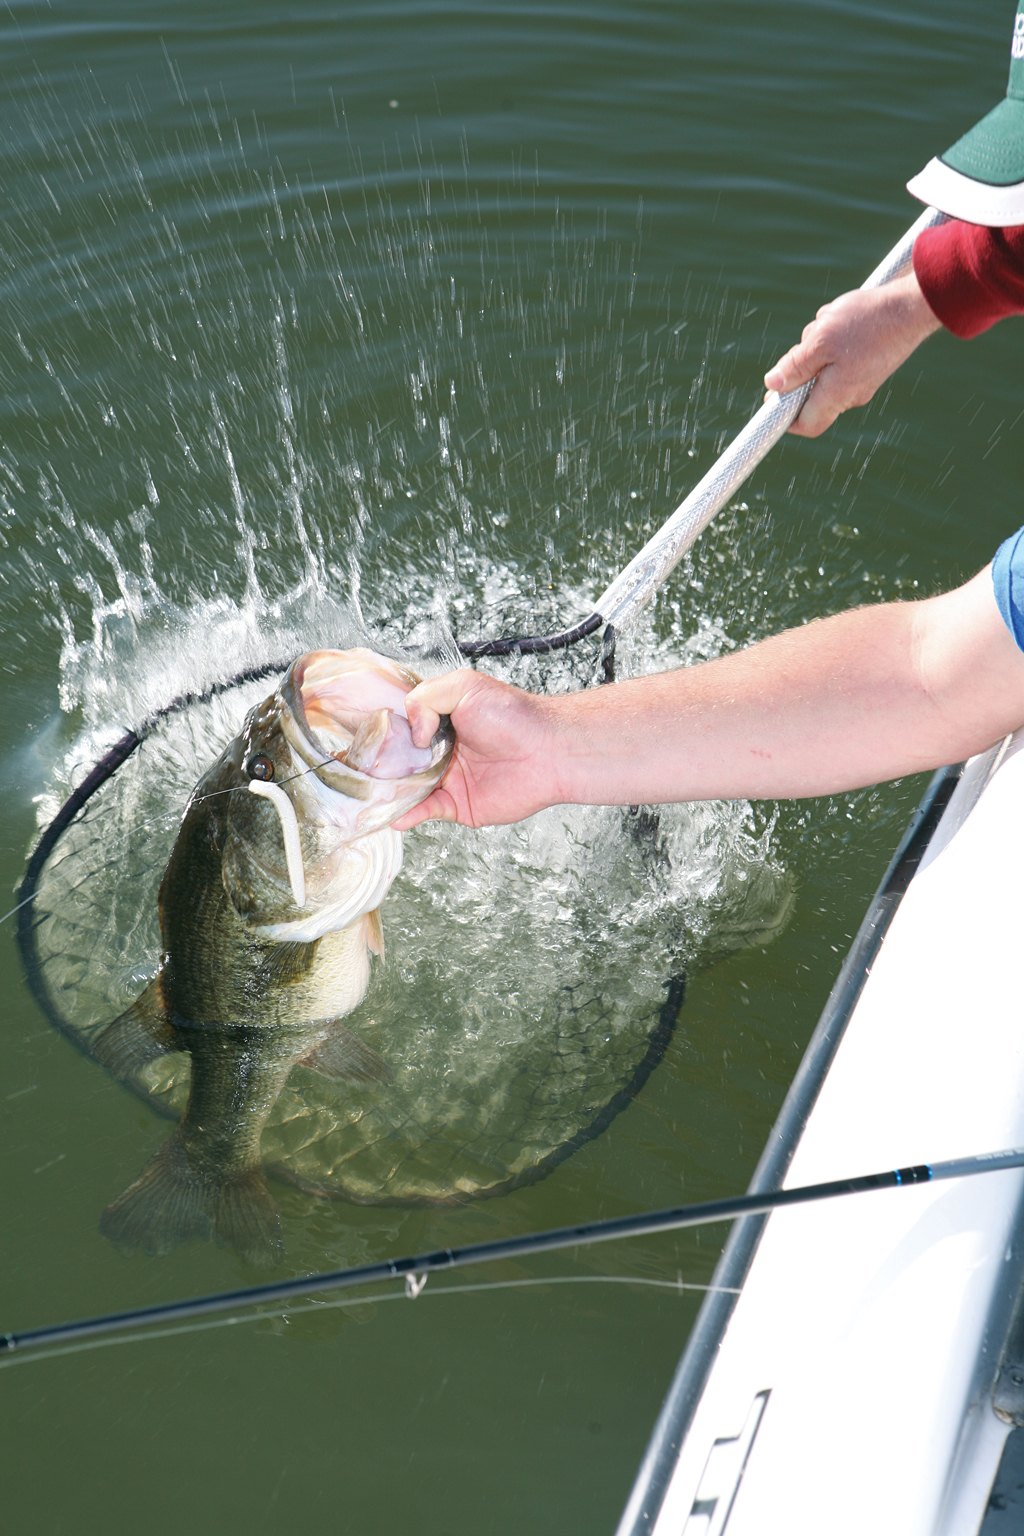 Most bass fishermen agree June is one of the best times to challenge New England's black bass. By